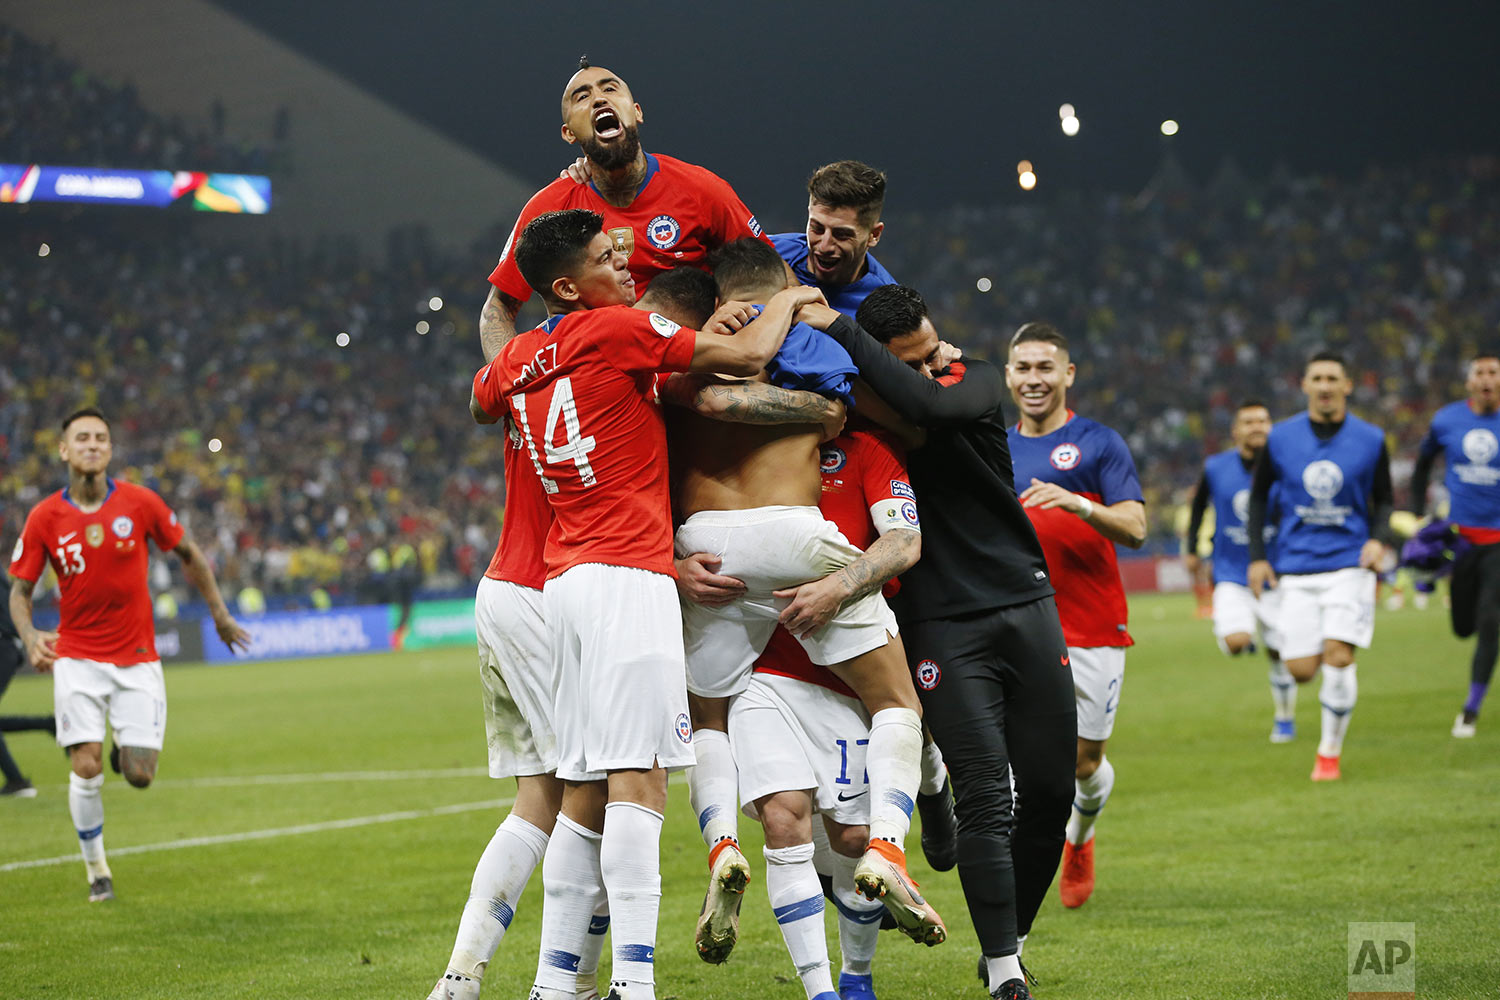 Chile players surround teammate Alexis Sanchez after he scored the winning penalty shot against Colombia during a Copa America quarterfinal soccer match at  Arena Corinthians in Sao Paulo, Brazil, Friday, June 28, 2019. Chile beat Colombia 5-4 on penalties after the match ended 0-0. (AP Photo/Andre Penner)